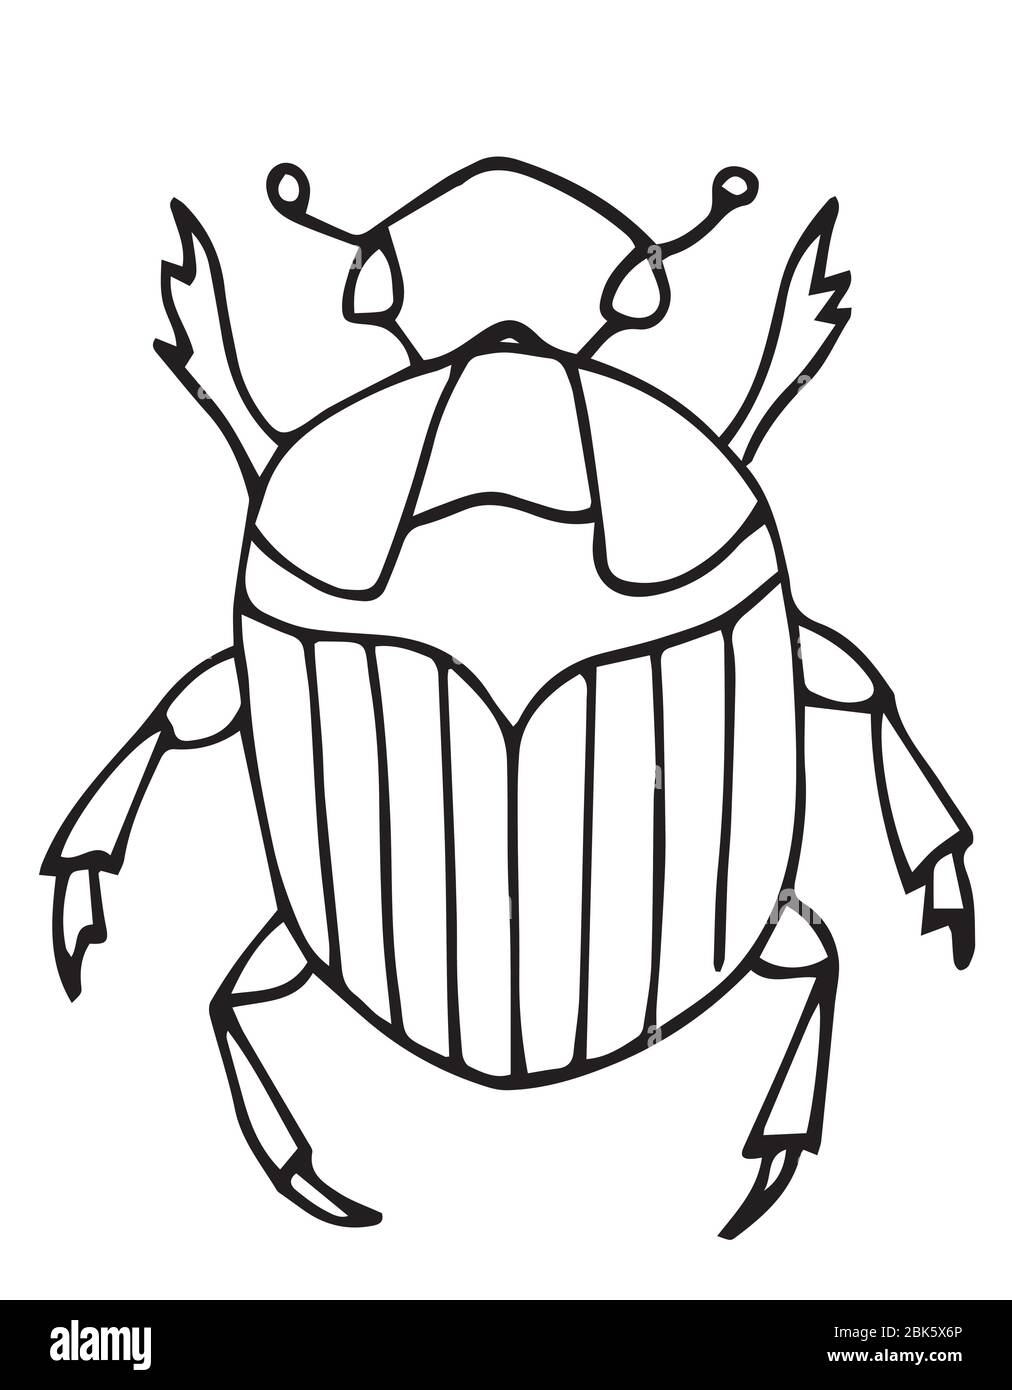 - Outline Bug, Vector Icon.Easy Coloring Book Page For Kids. Insects